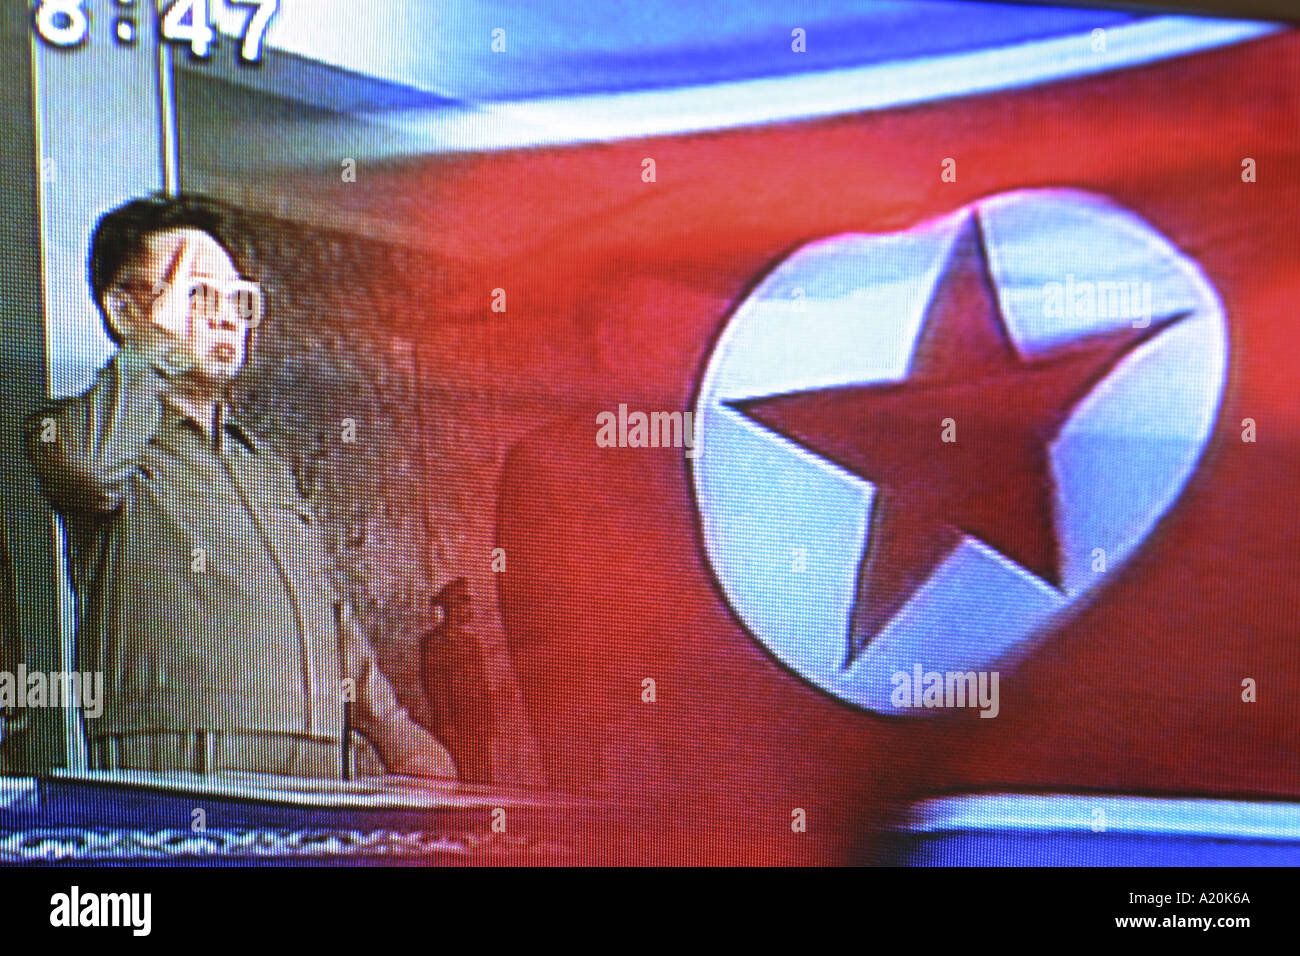 Kim Jung Il North Korean President and dictator shown in archive footage on Japanese television. - Stock Image